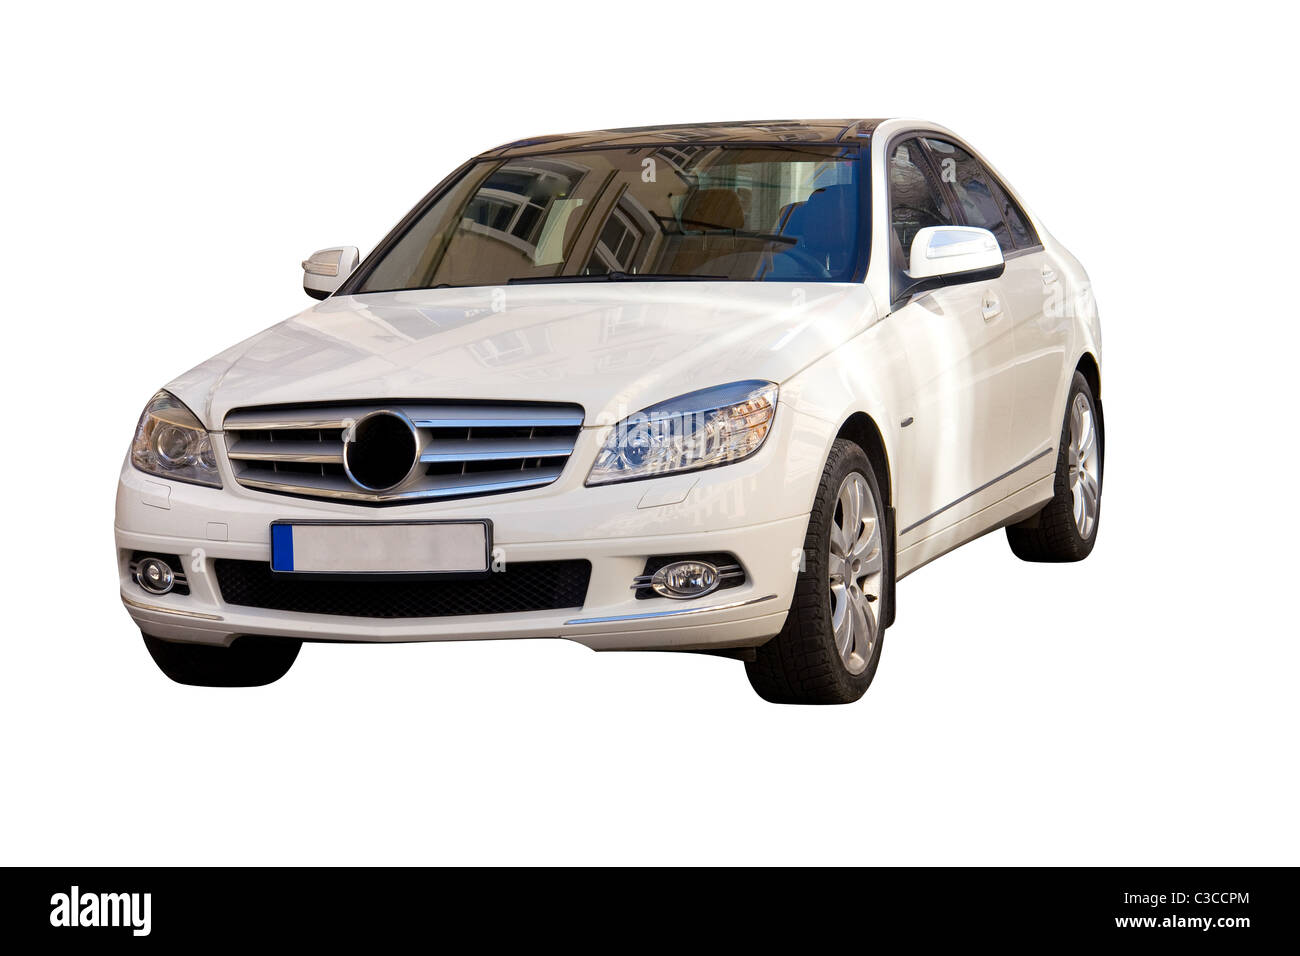 Neue moderne weiße Familienauto over White Background Stockbild